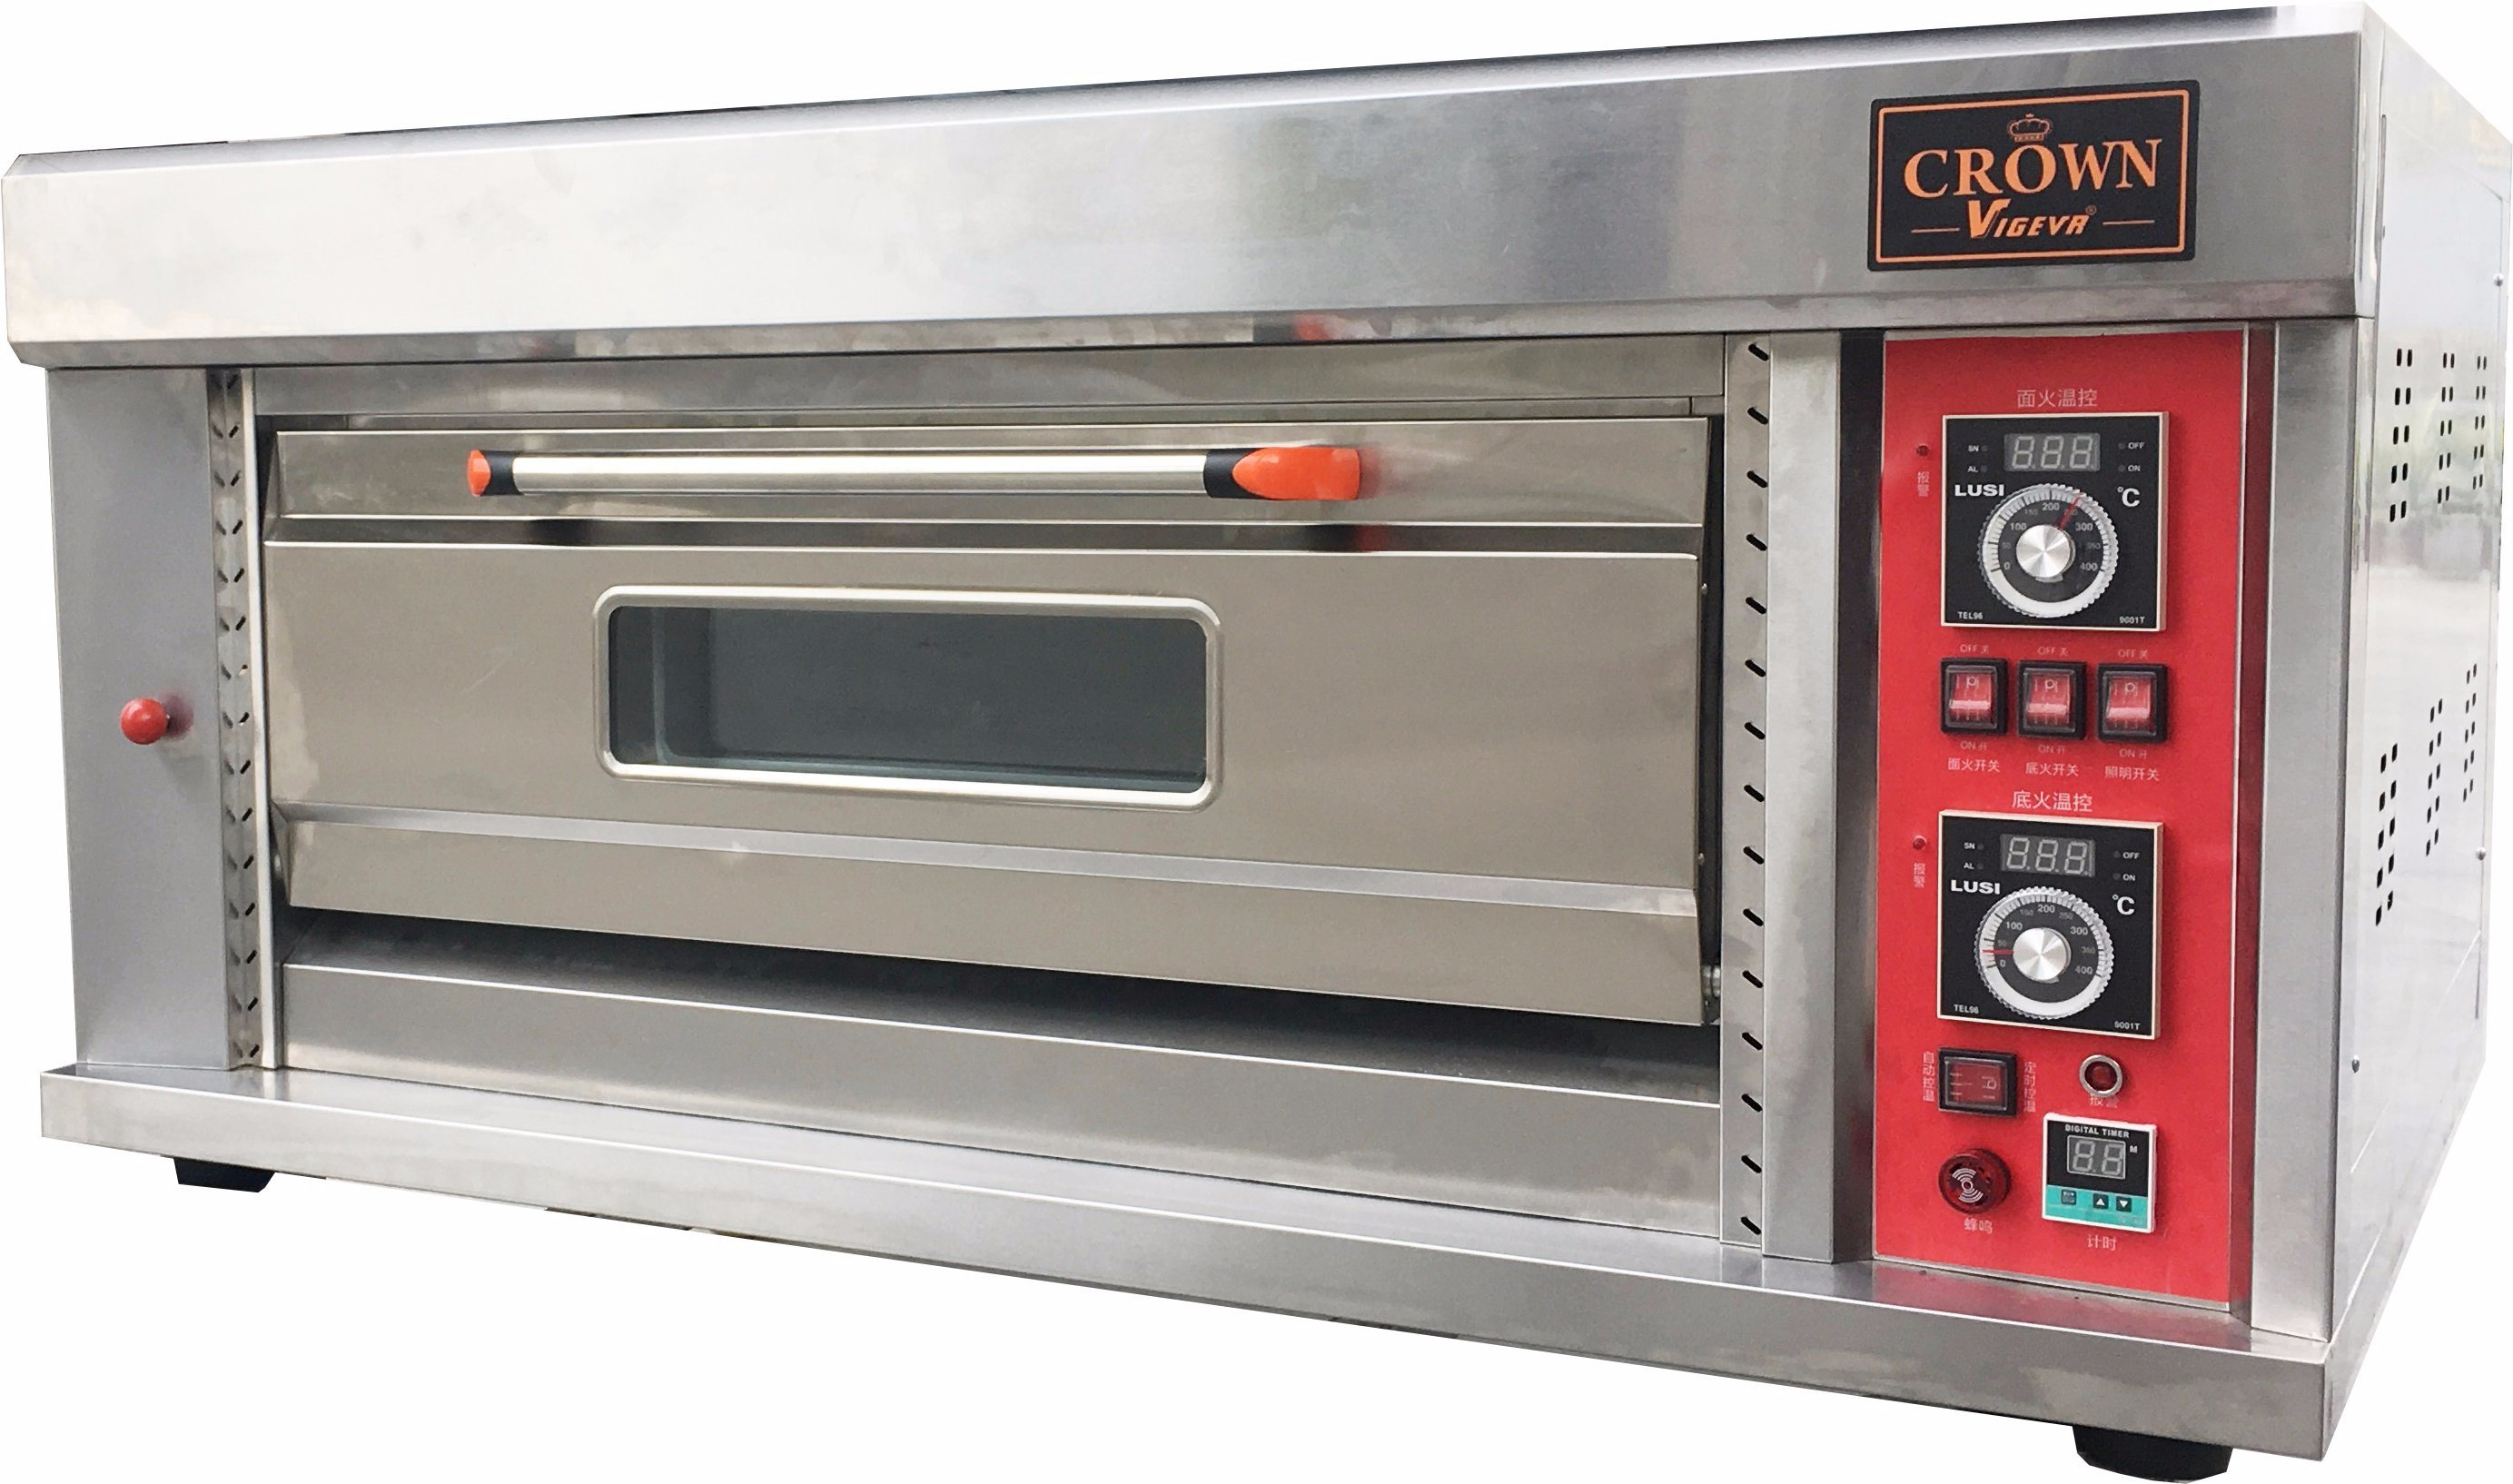 China Astar New Crown B Series Hgb 102q 1 Deck 2 Trays Gas Oven Bakery Equipment Baking Machine Commercial Pizza